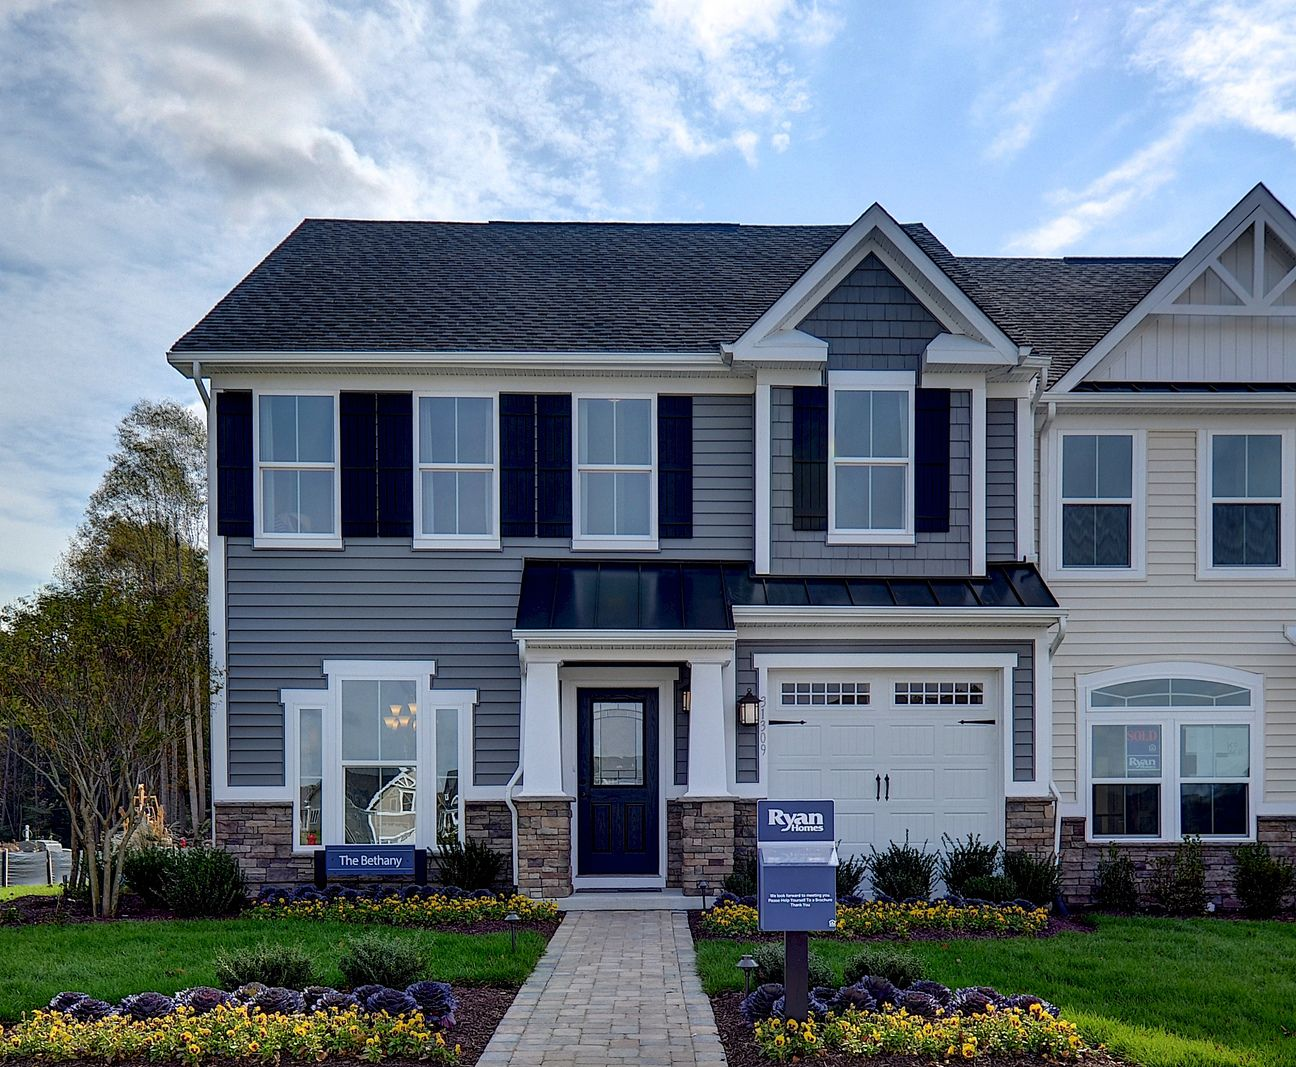 WELCOME TO SUNSET GLEN:Lowest-priced new townhomes in a desirable Lewes location, one minute to Rt 1 for easy access to conveniences and the beaches.Click here to schedule your appointment.